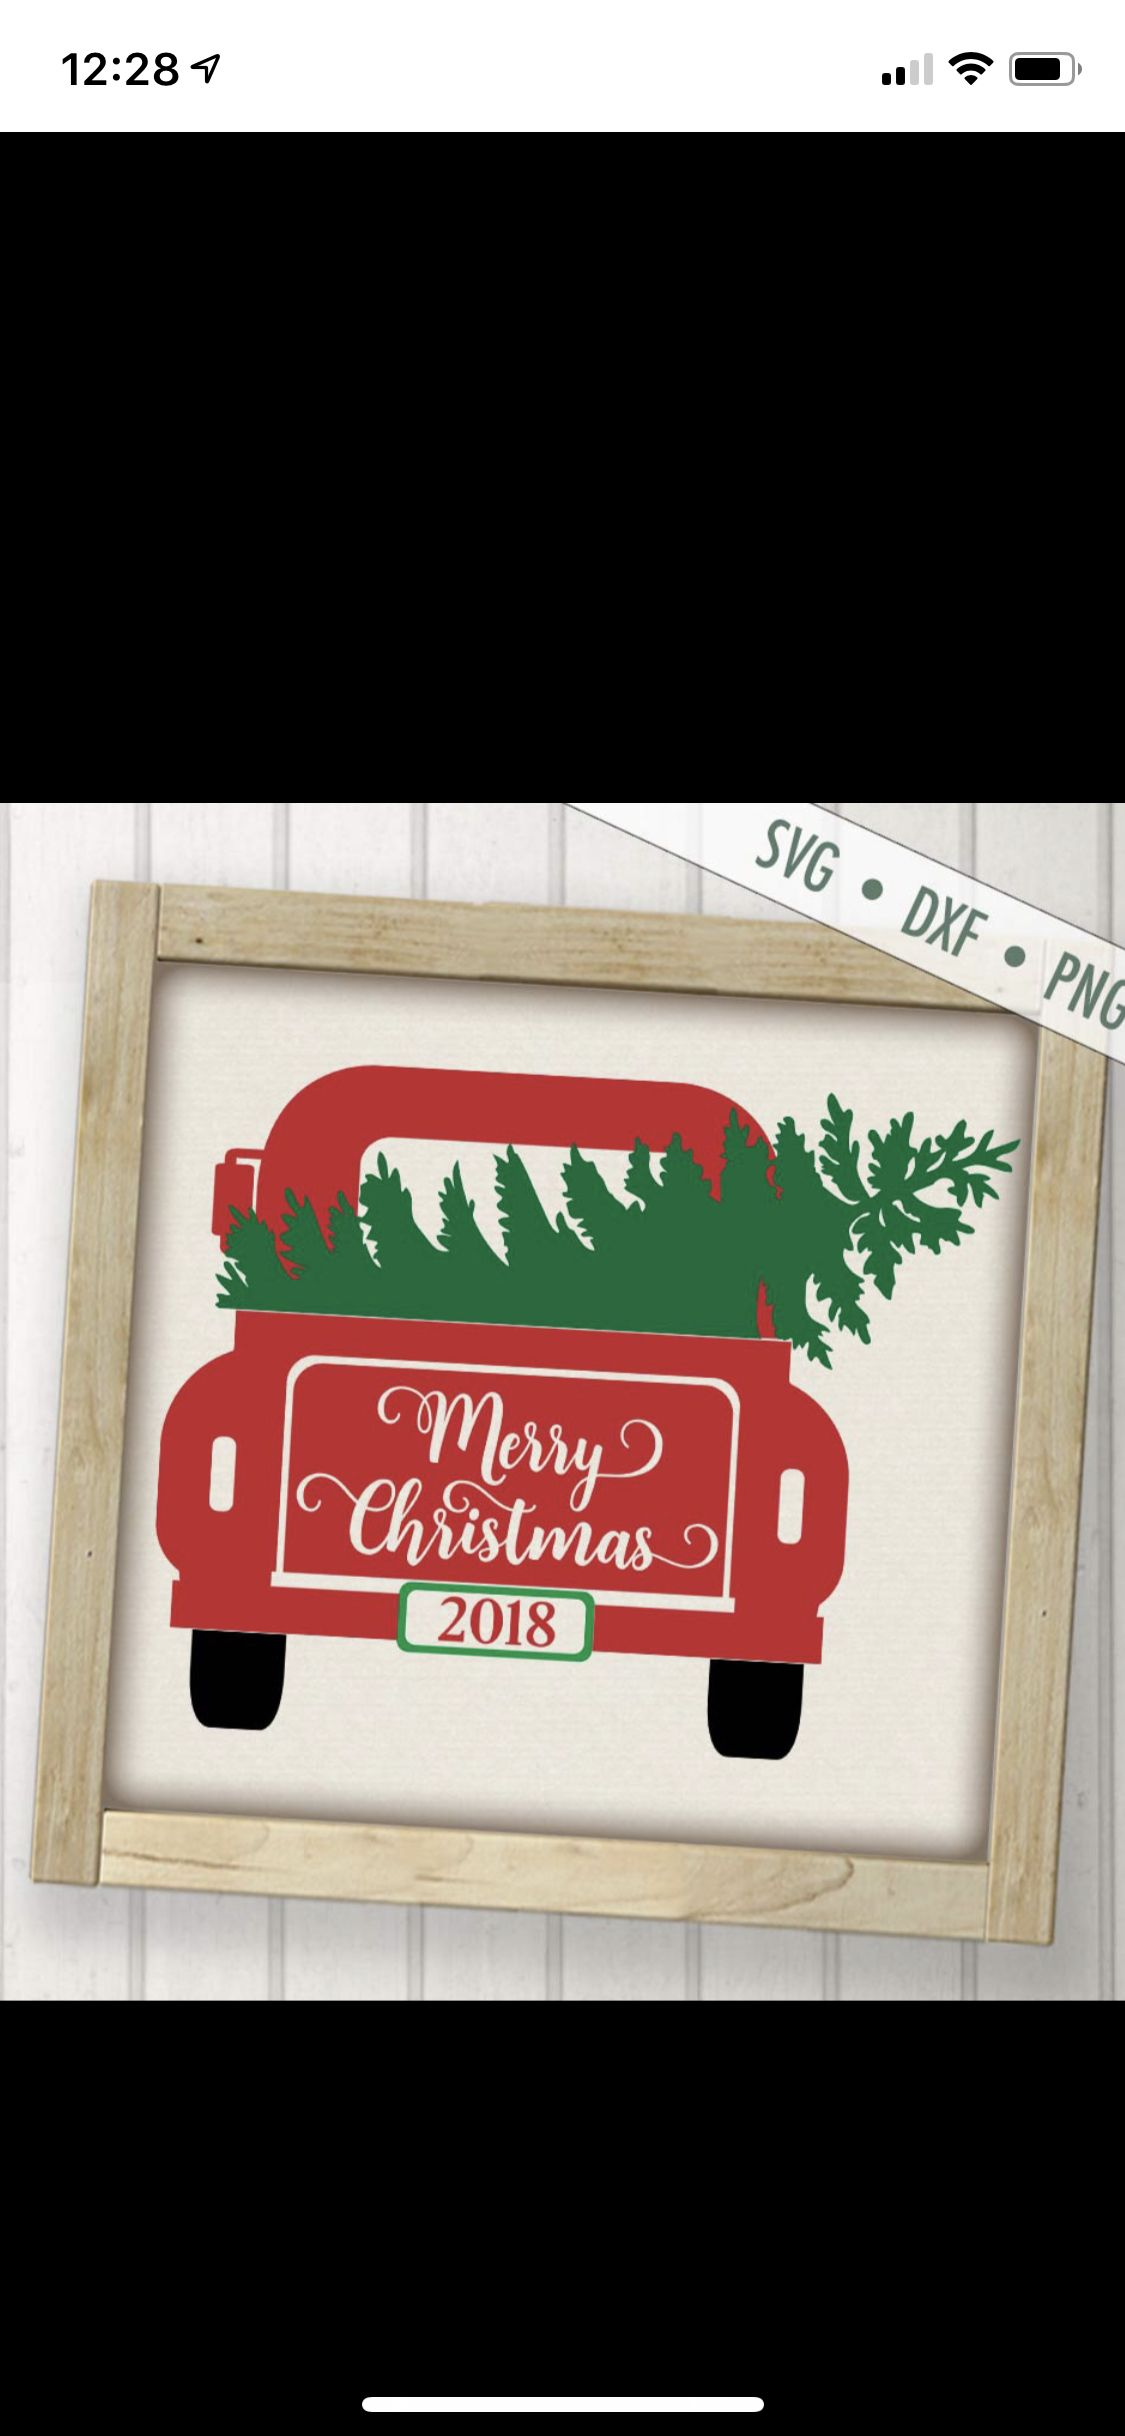 Pin by Debby on Cards   Merry christmas, Novelty sign, Merry